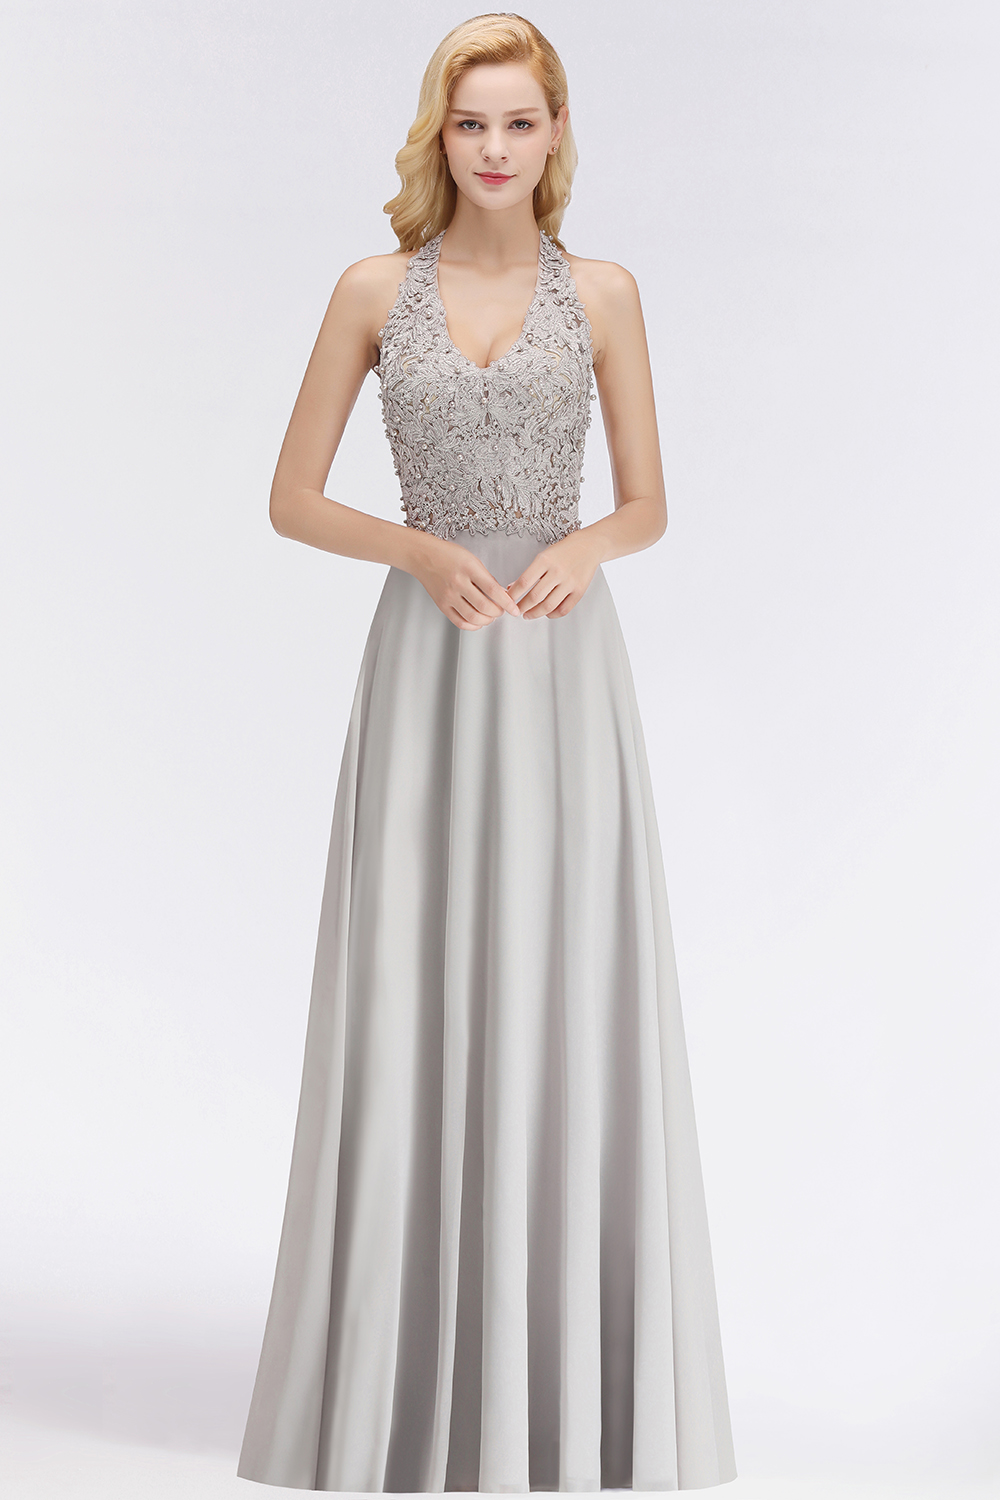 Halter Composite Emulation Blush Bridesmaid Dresses Long